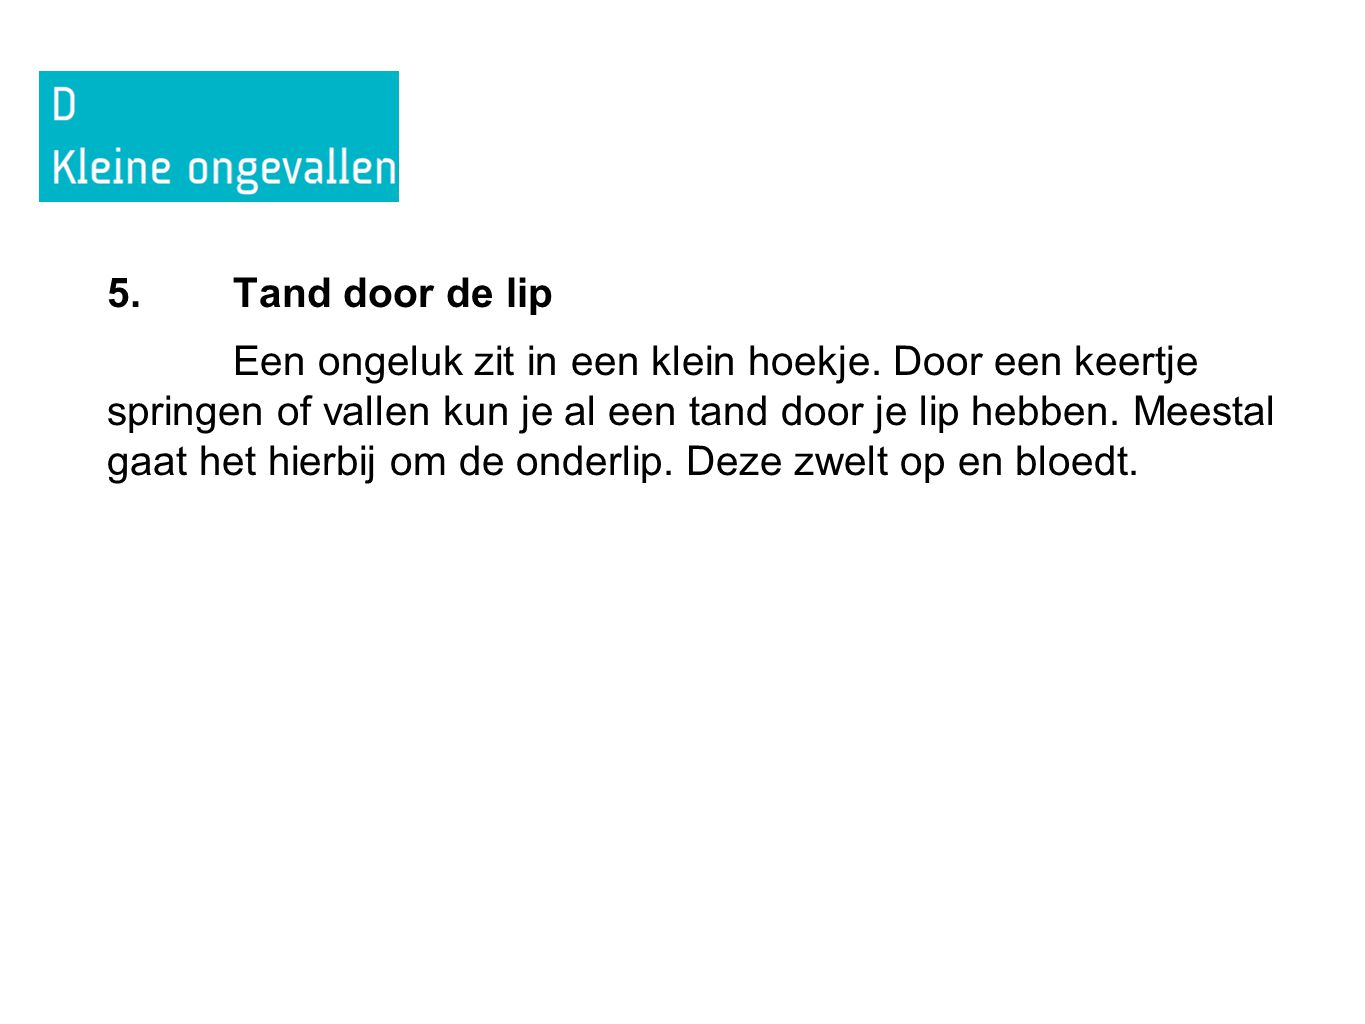 5. Tand door de lip